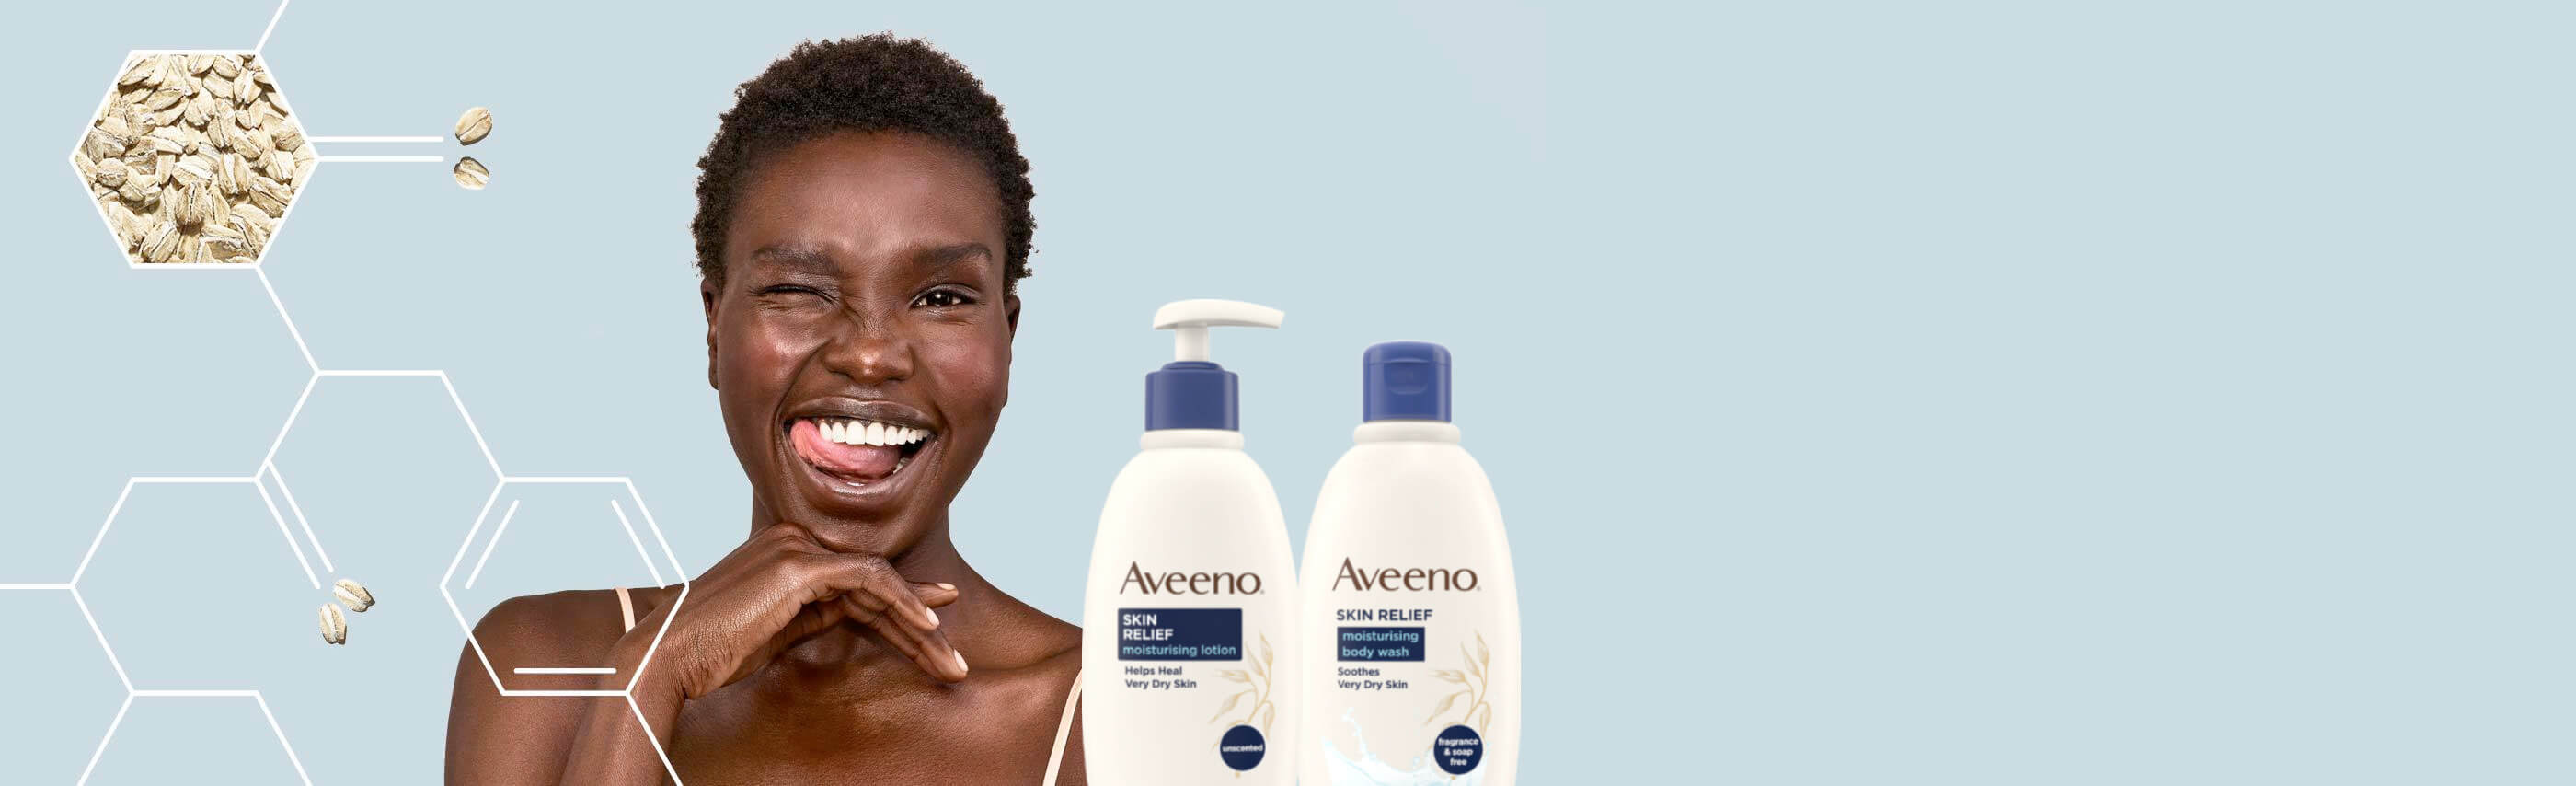 Skincare & Hair Care Products | AVEENO®